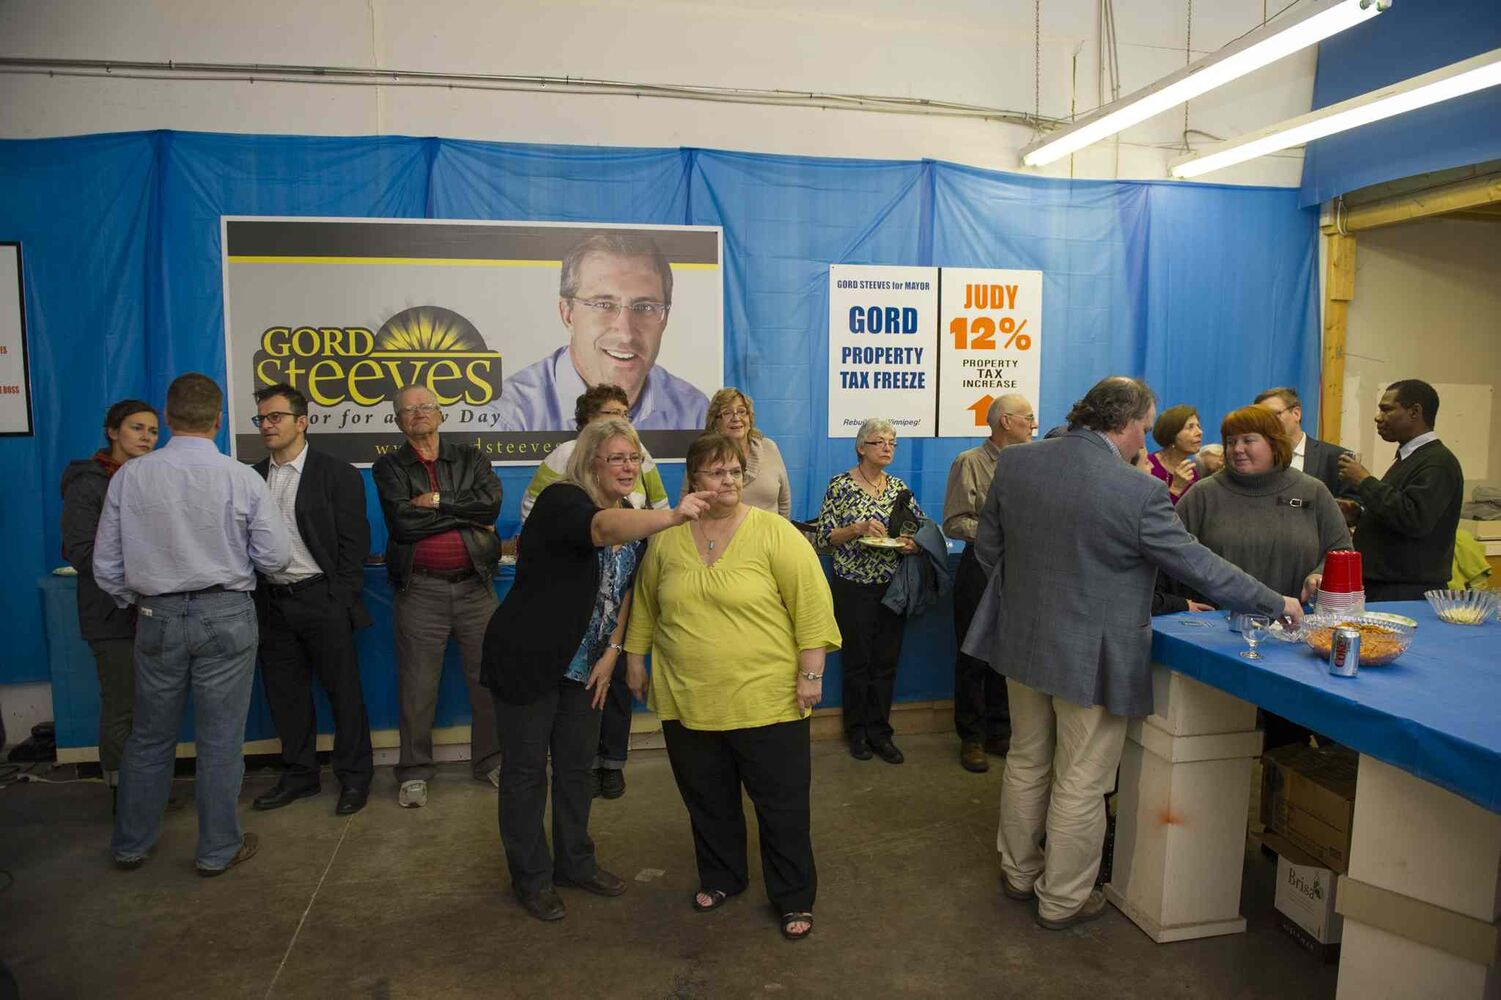 Supporters at campaign headquarters for mayoral candidate Gord Steeves. (DAVID LIPNOWSKI / WINNIPEG FREE PRESS)